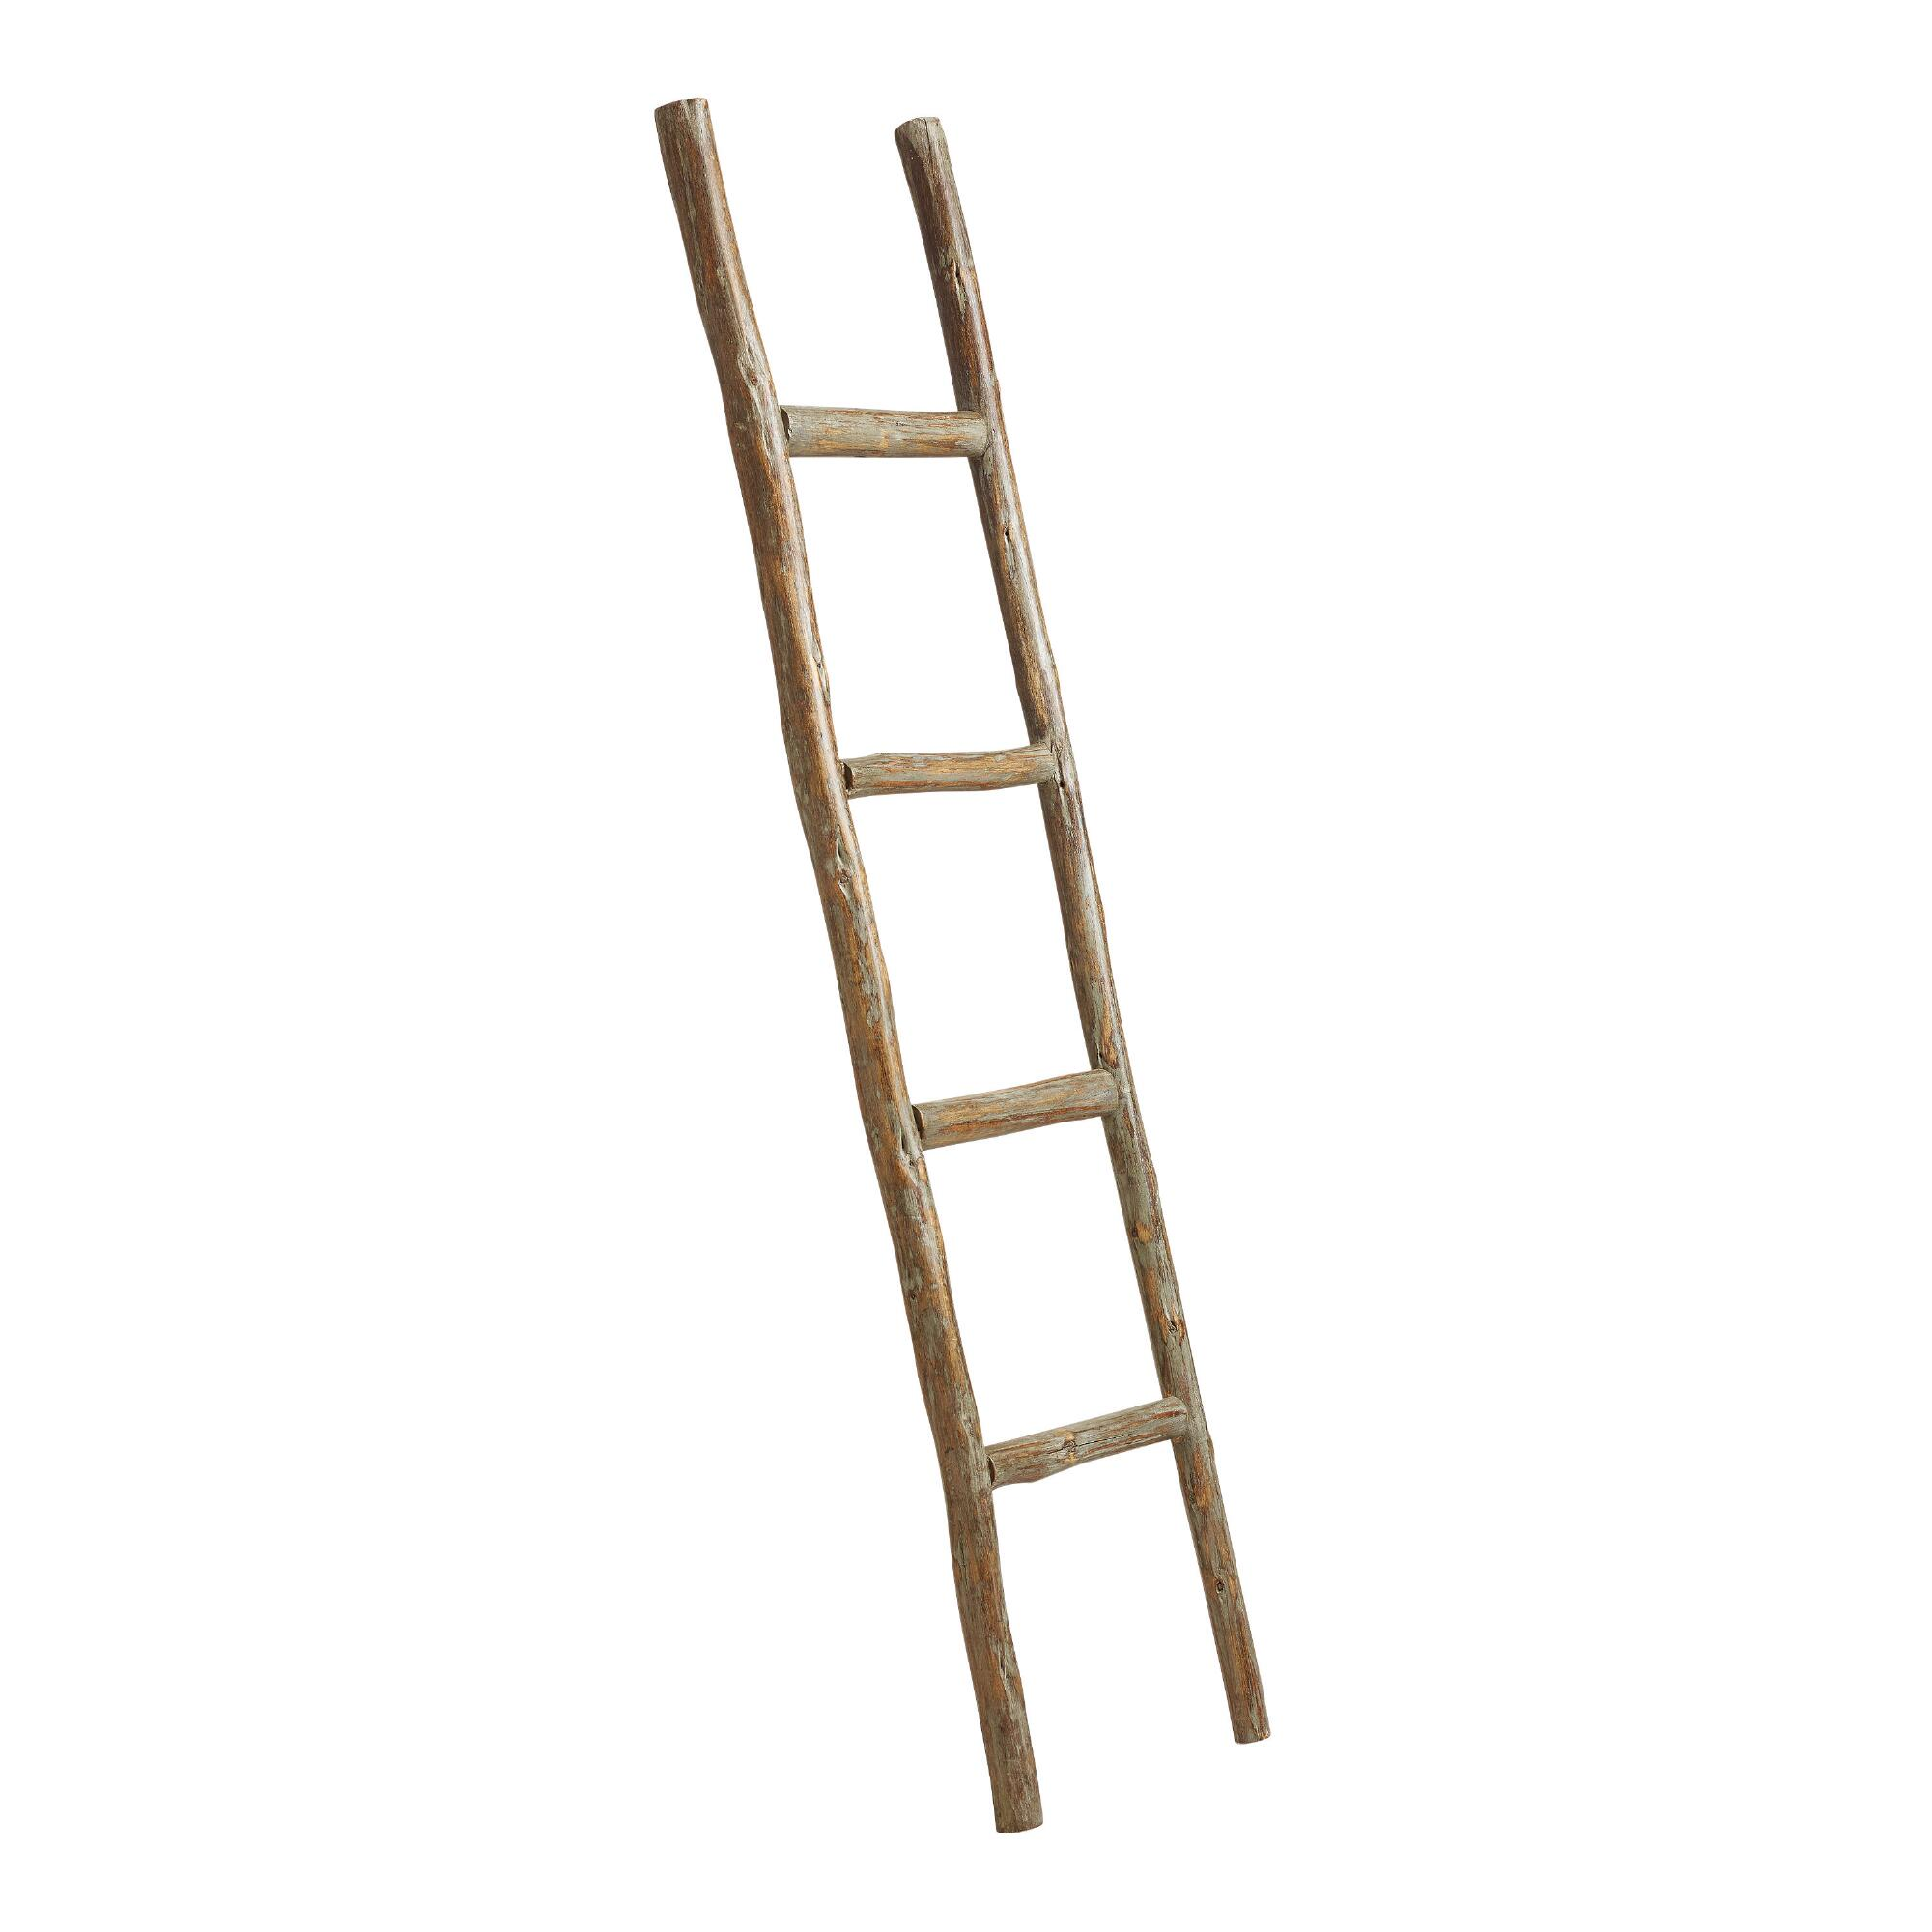 Wood Ladder Decor. Home Accents and Interior Decorating Ideas   World Market